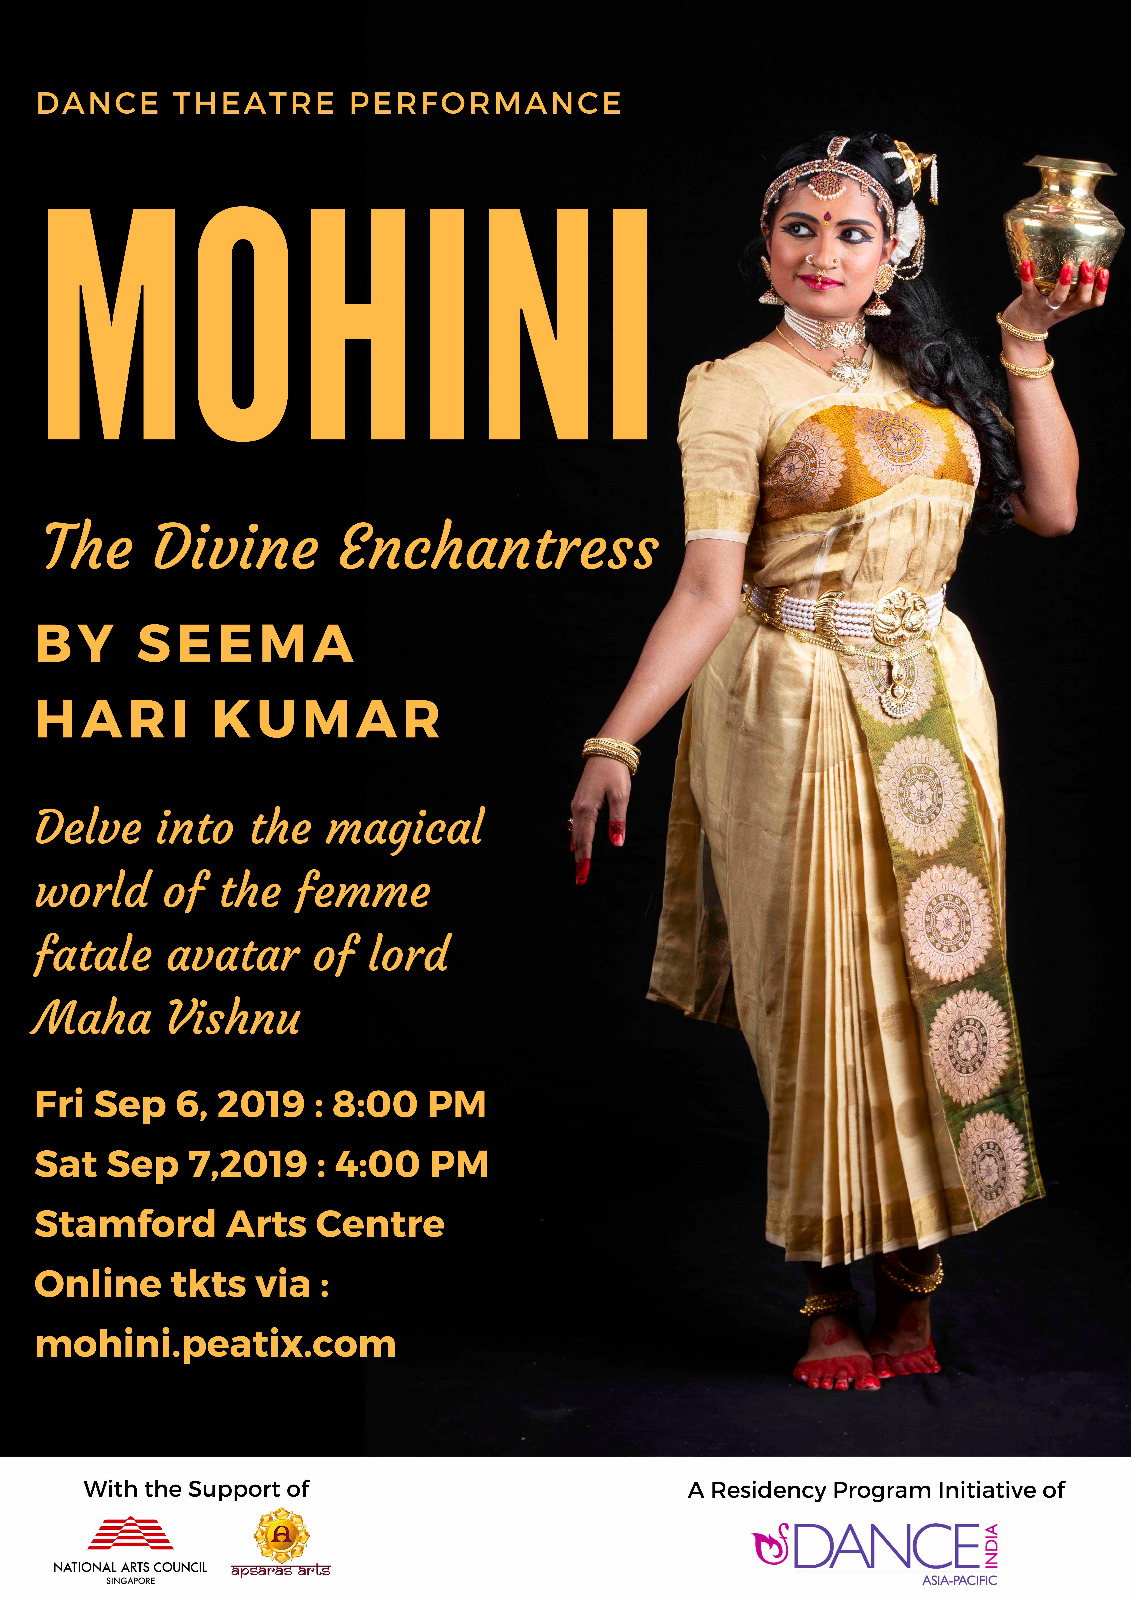 Mohini – The Divine Enchantress by Seema Harikumar